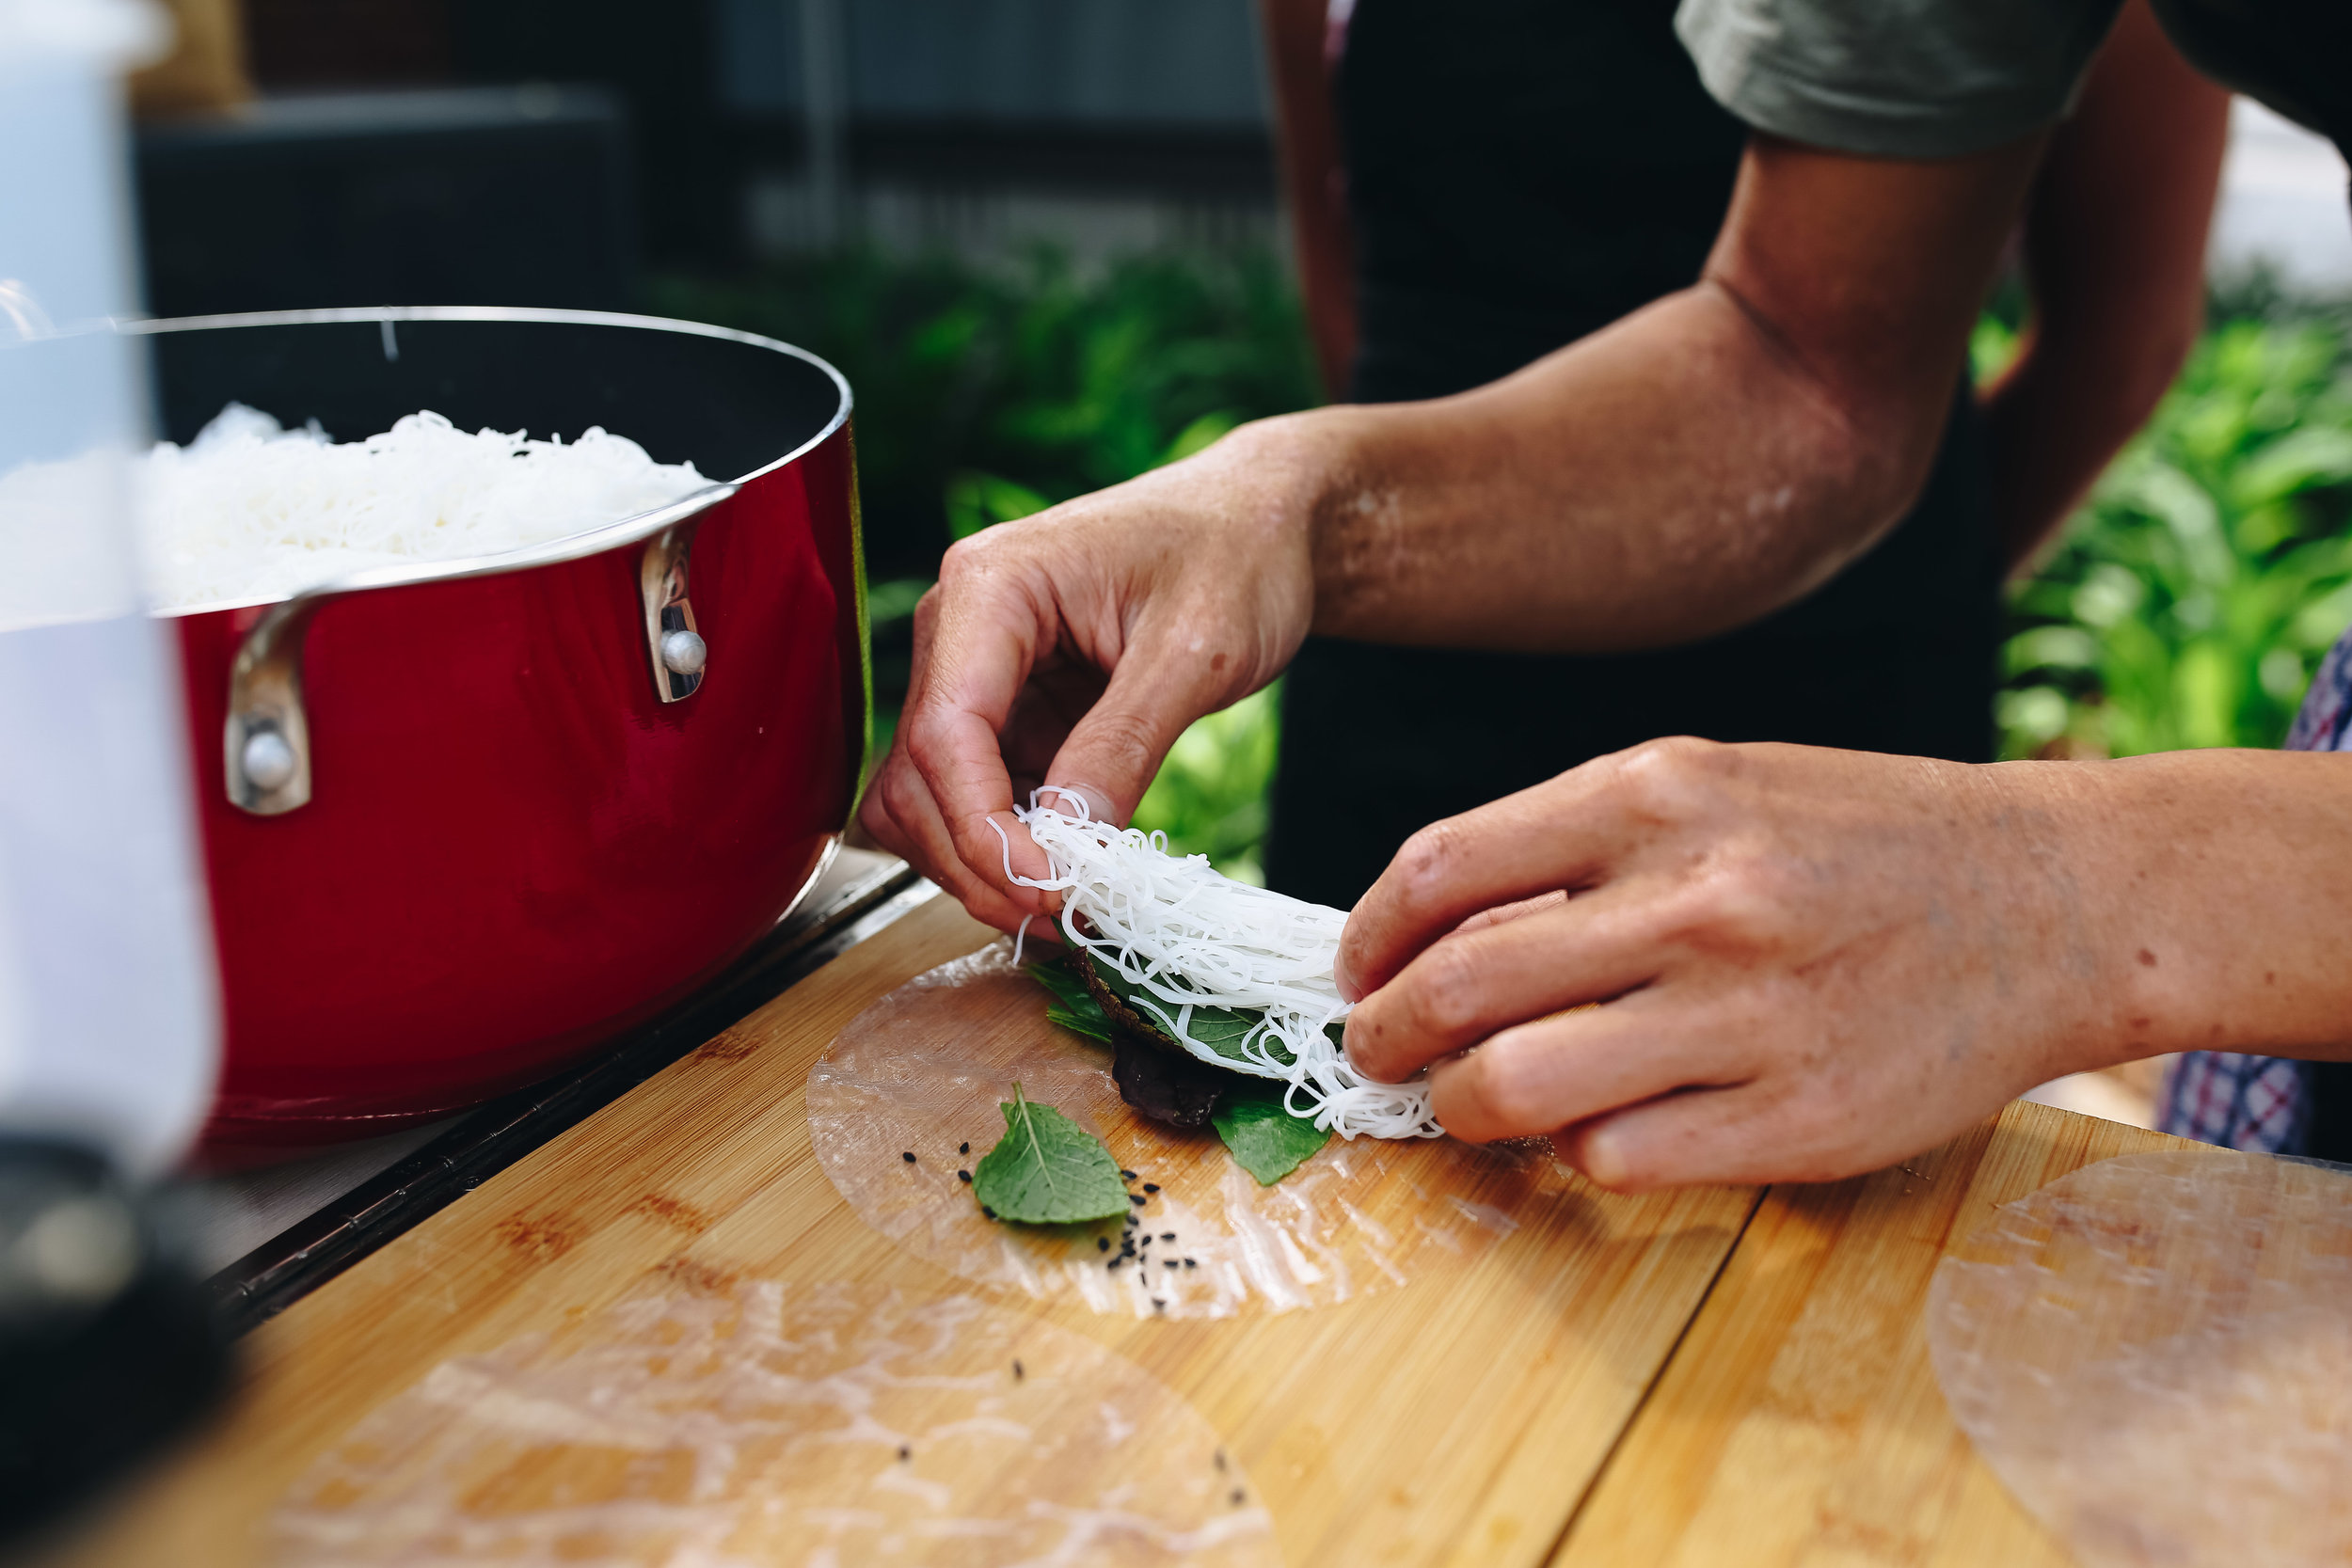 Julian delicately placing rice noodles into one of his rice paper rolls.